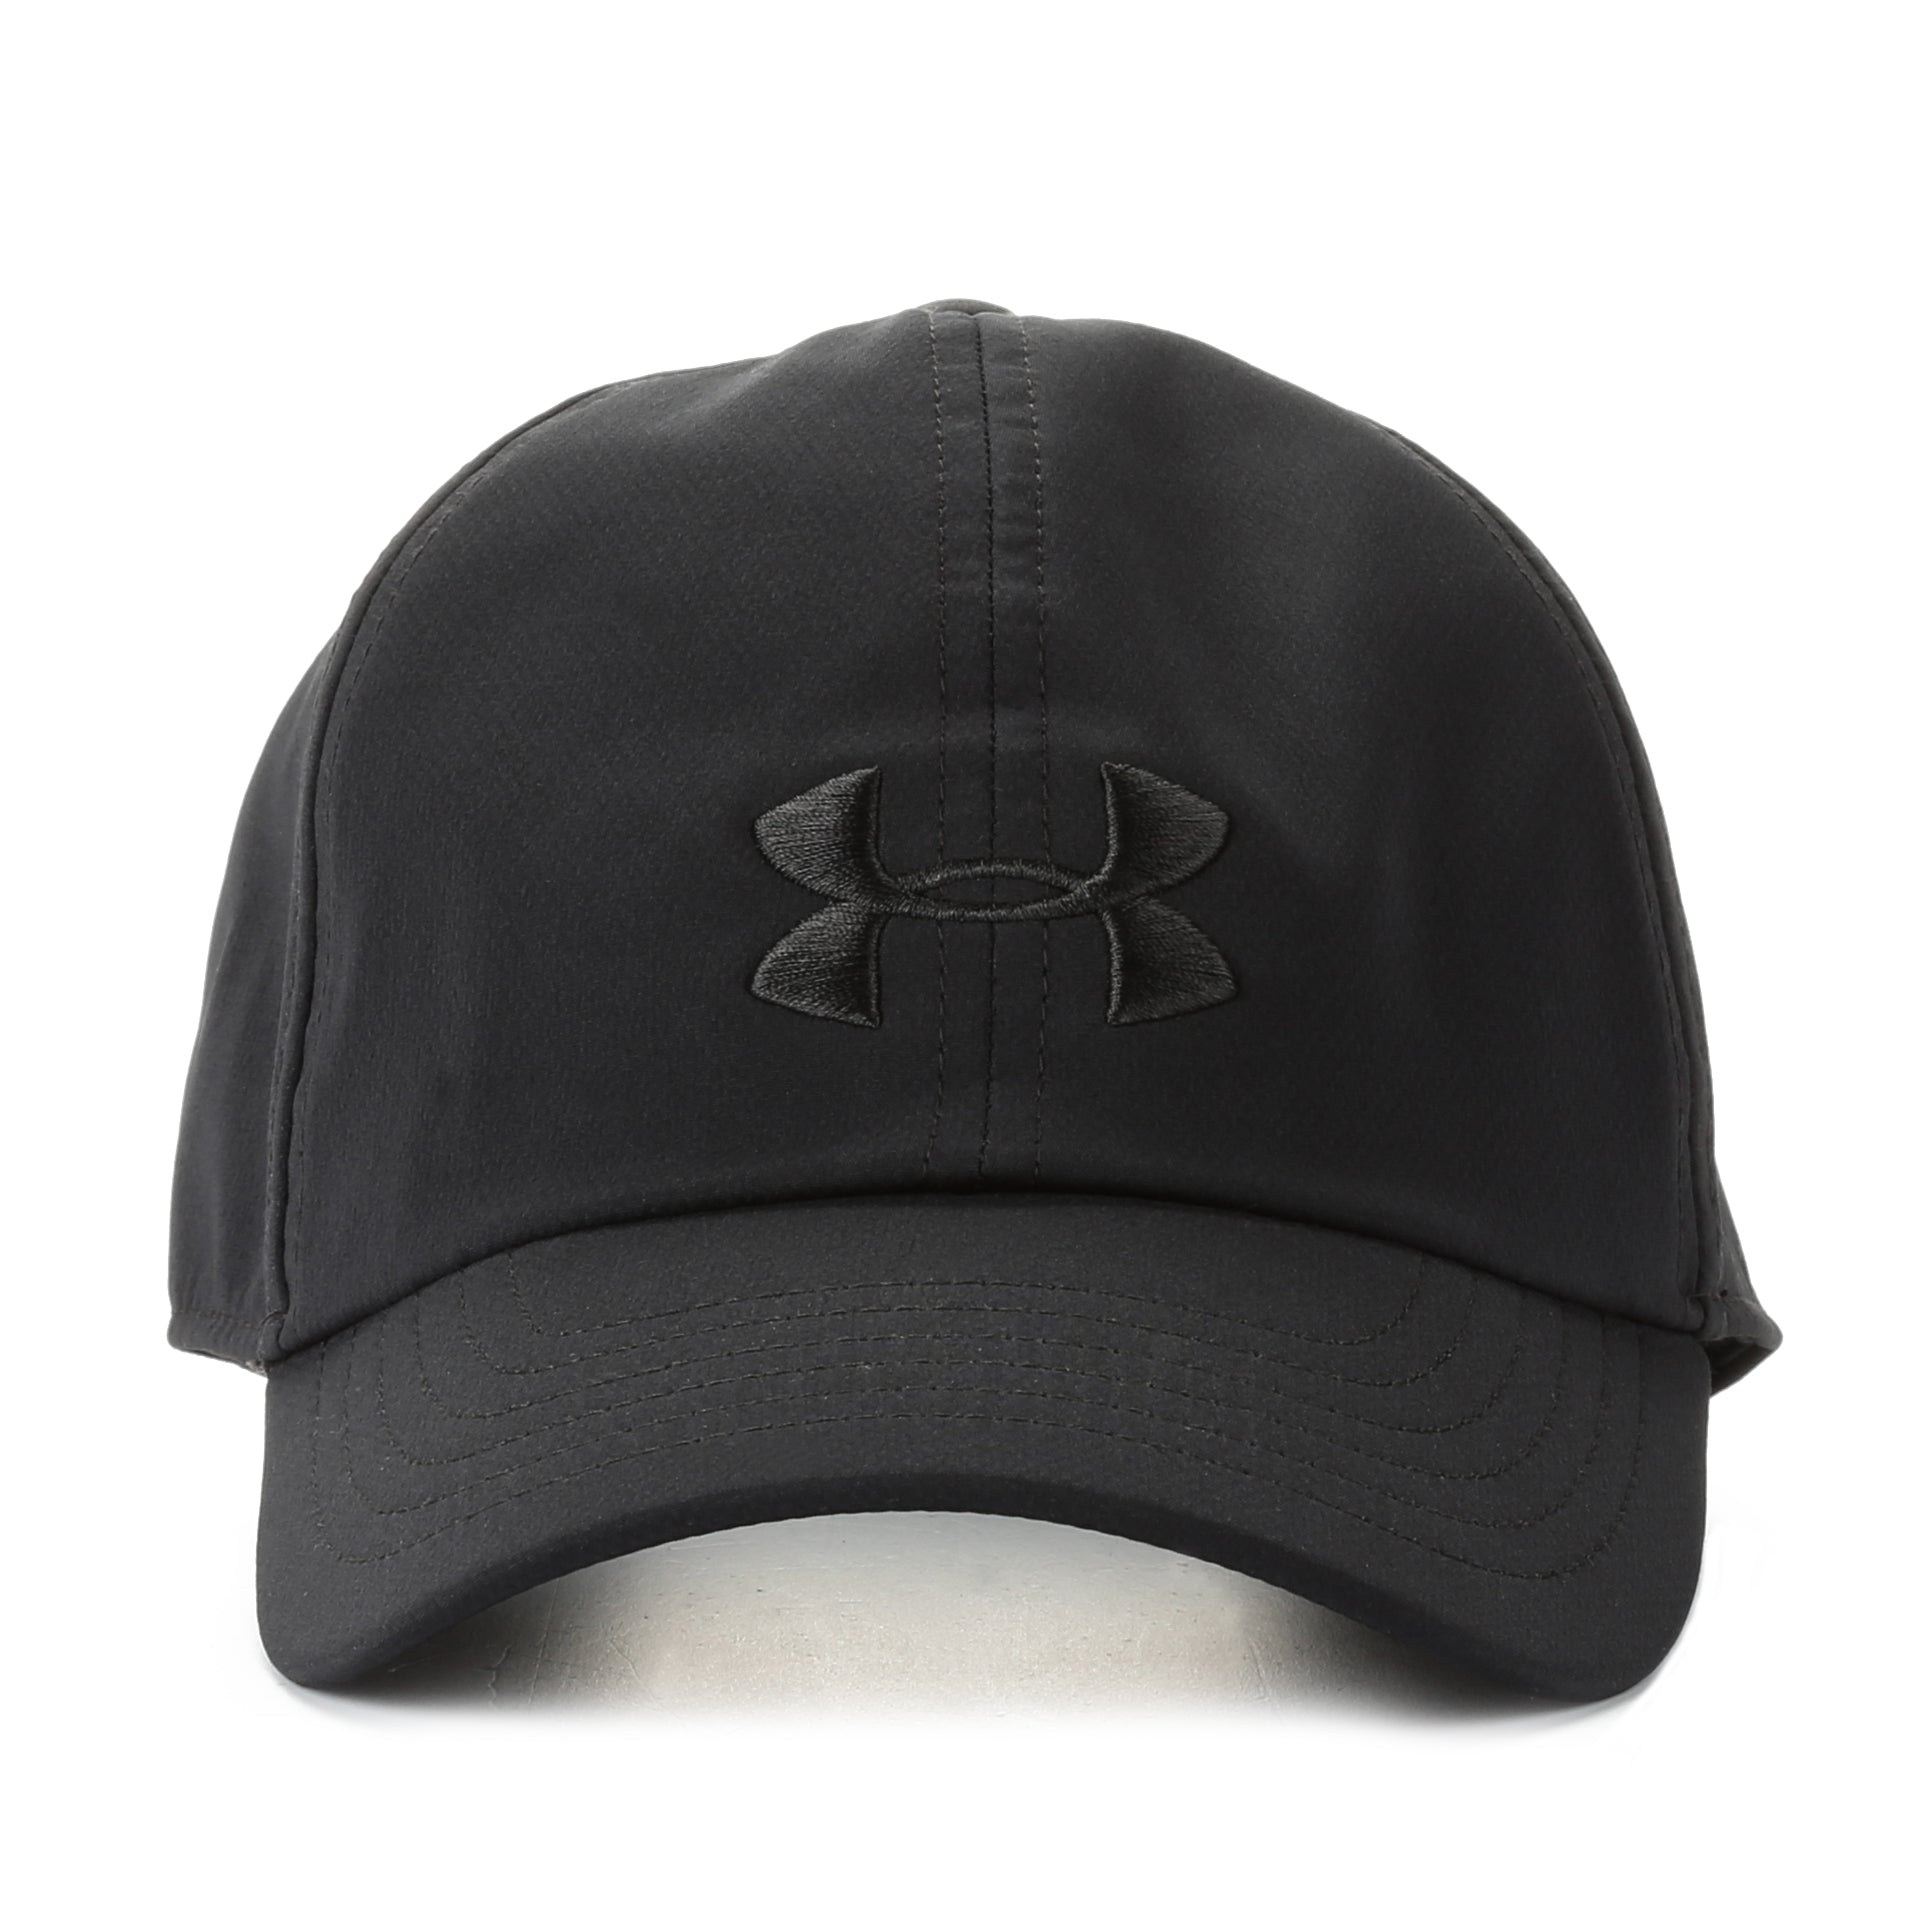 84b420875 Under Armour Women's Renegade Cap - Black/Black